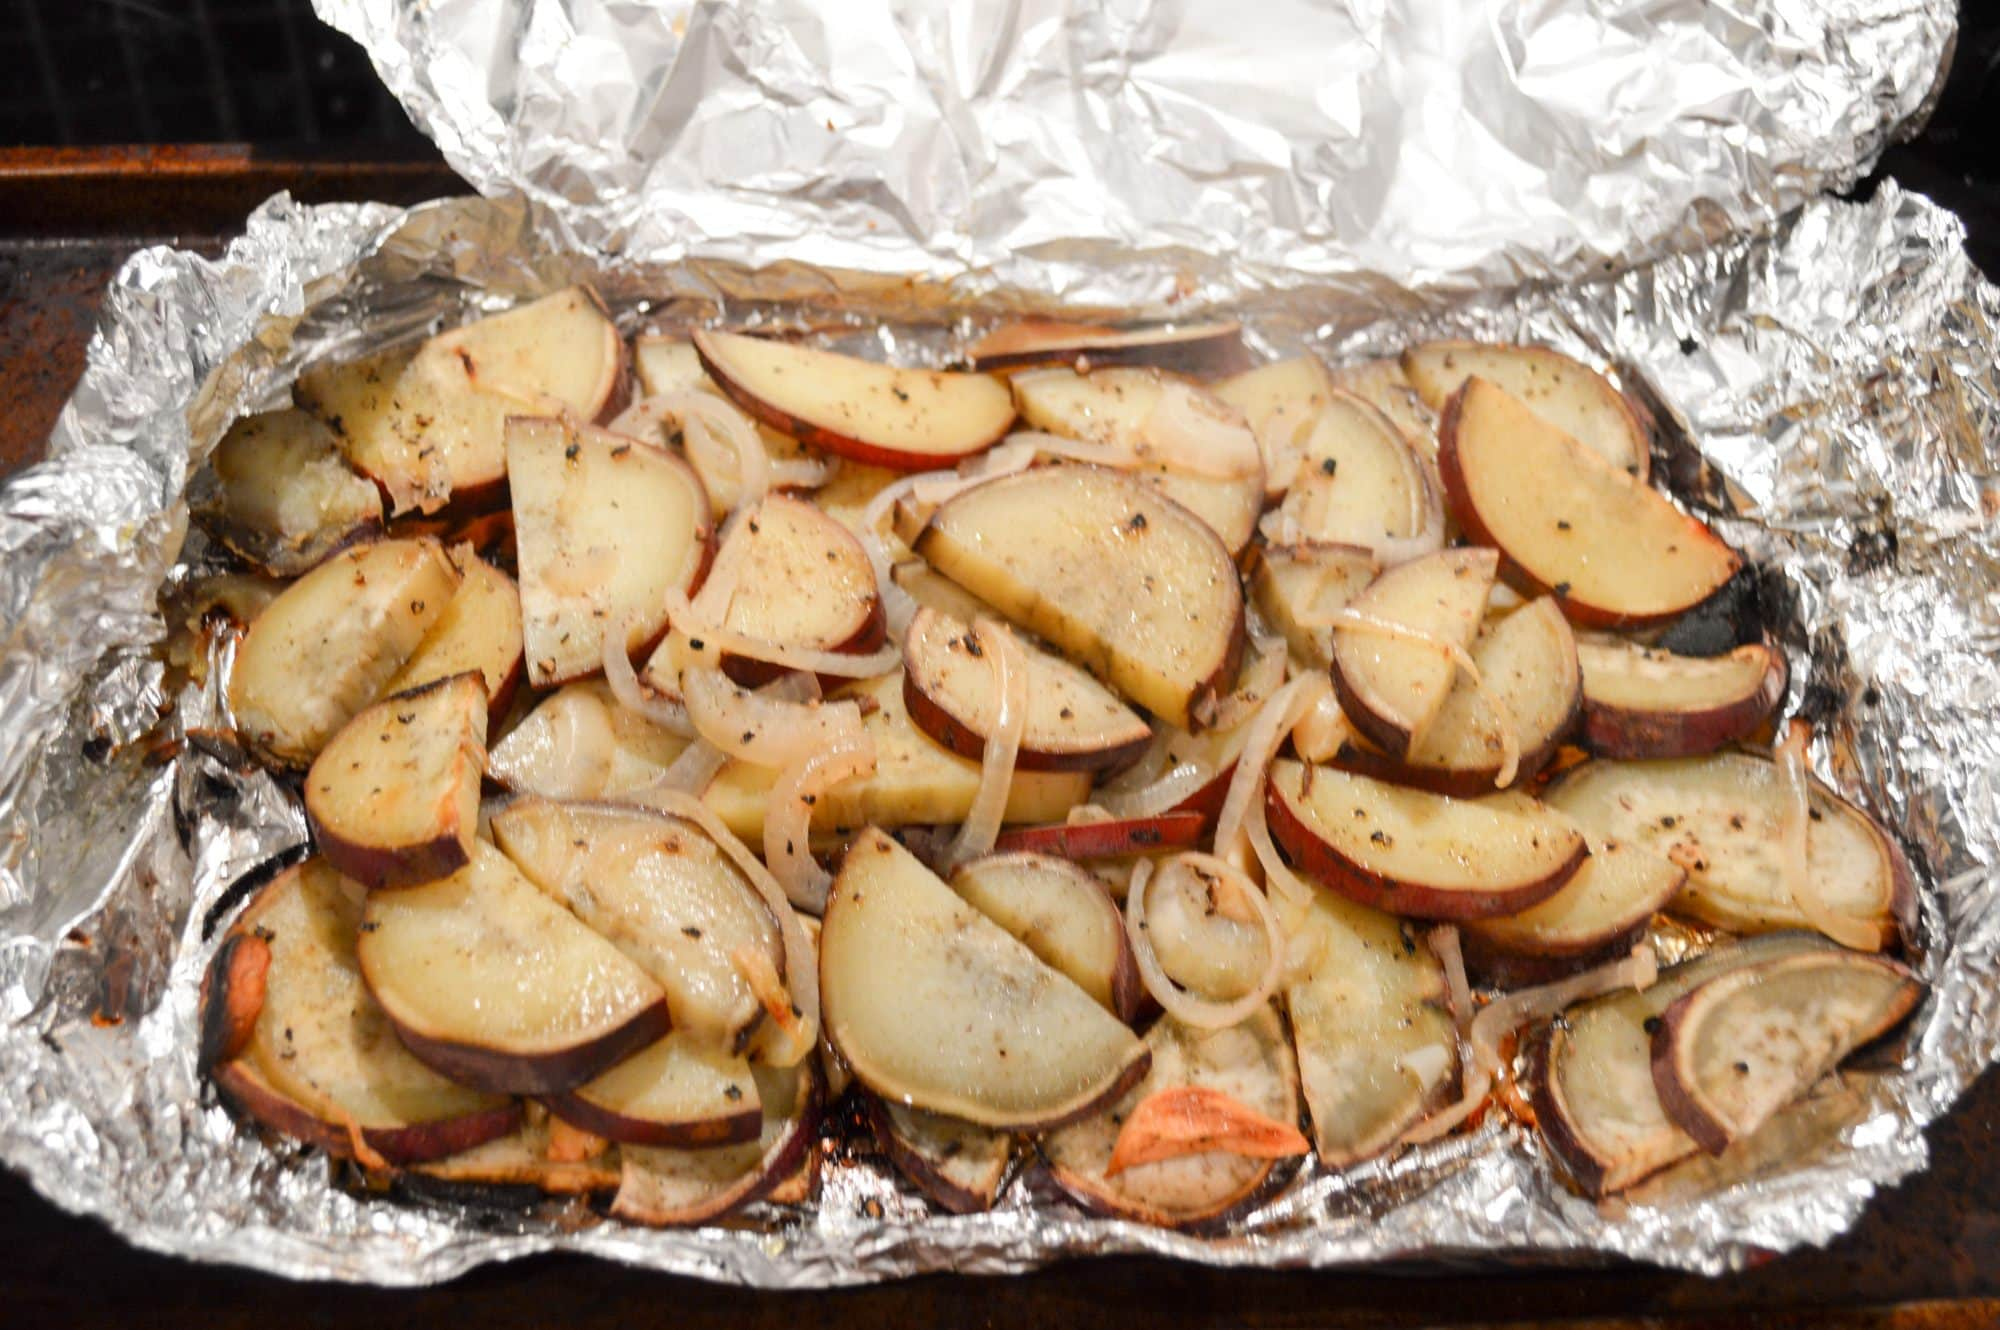 Treager smokers are for more than just meat, they also make great side dishes like these smoked potatoes!